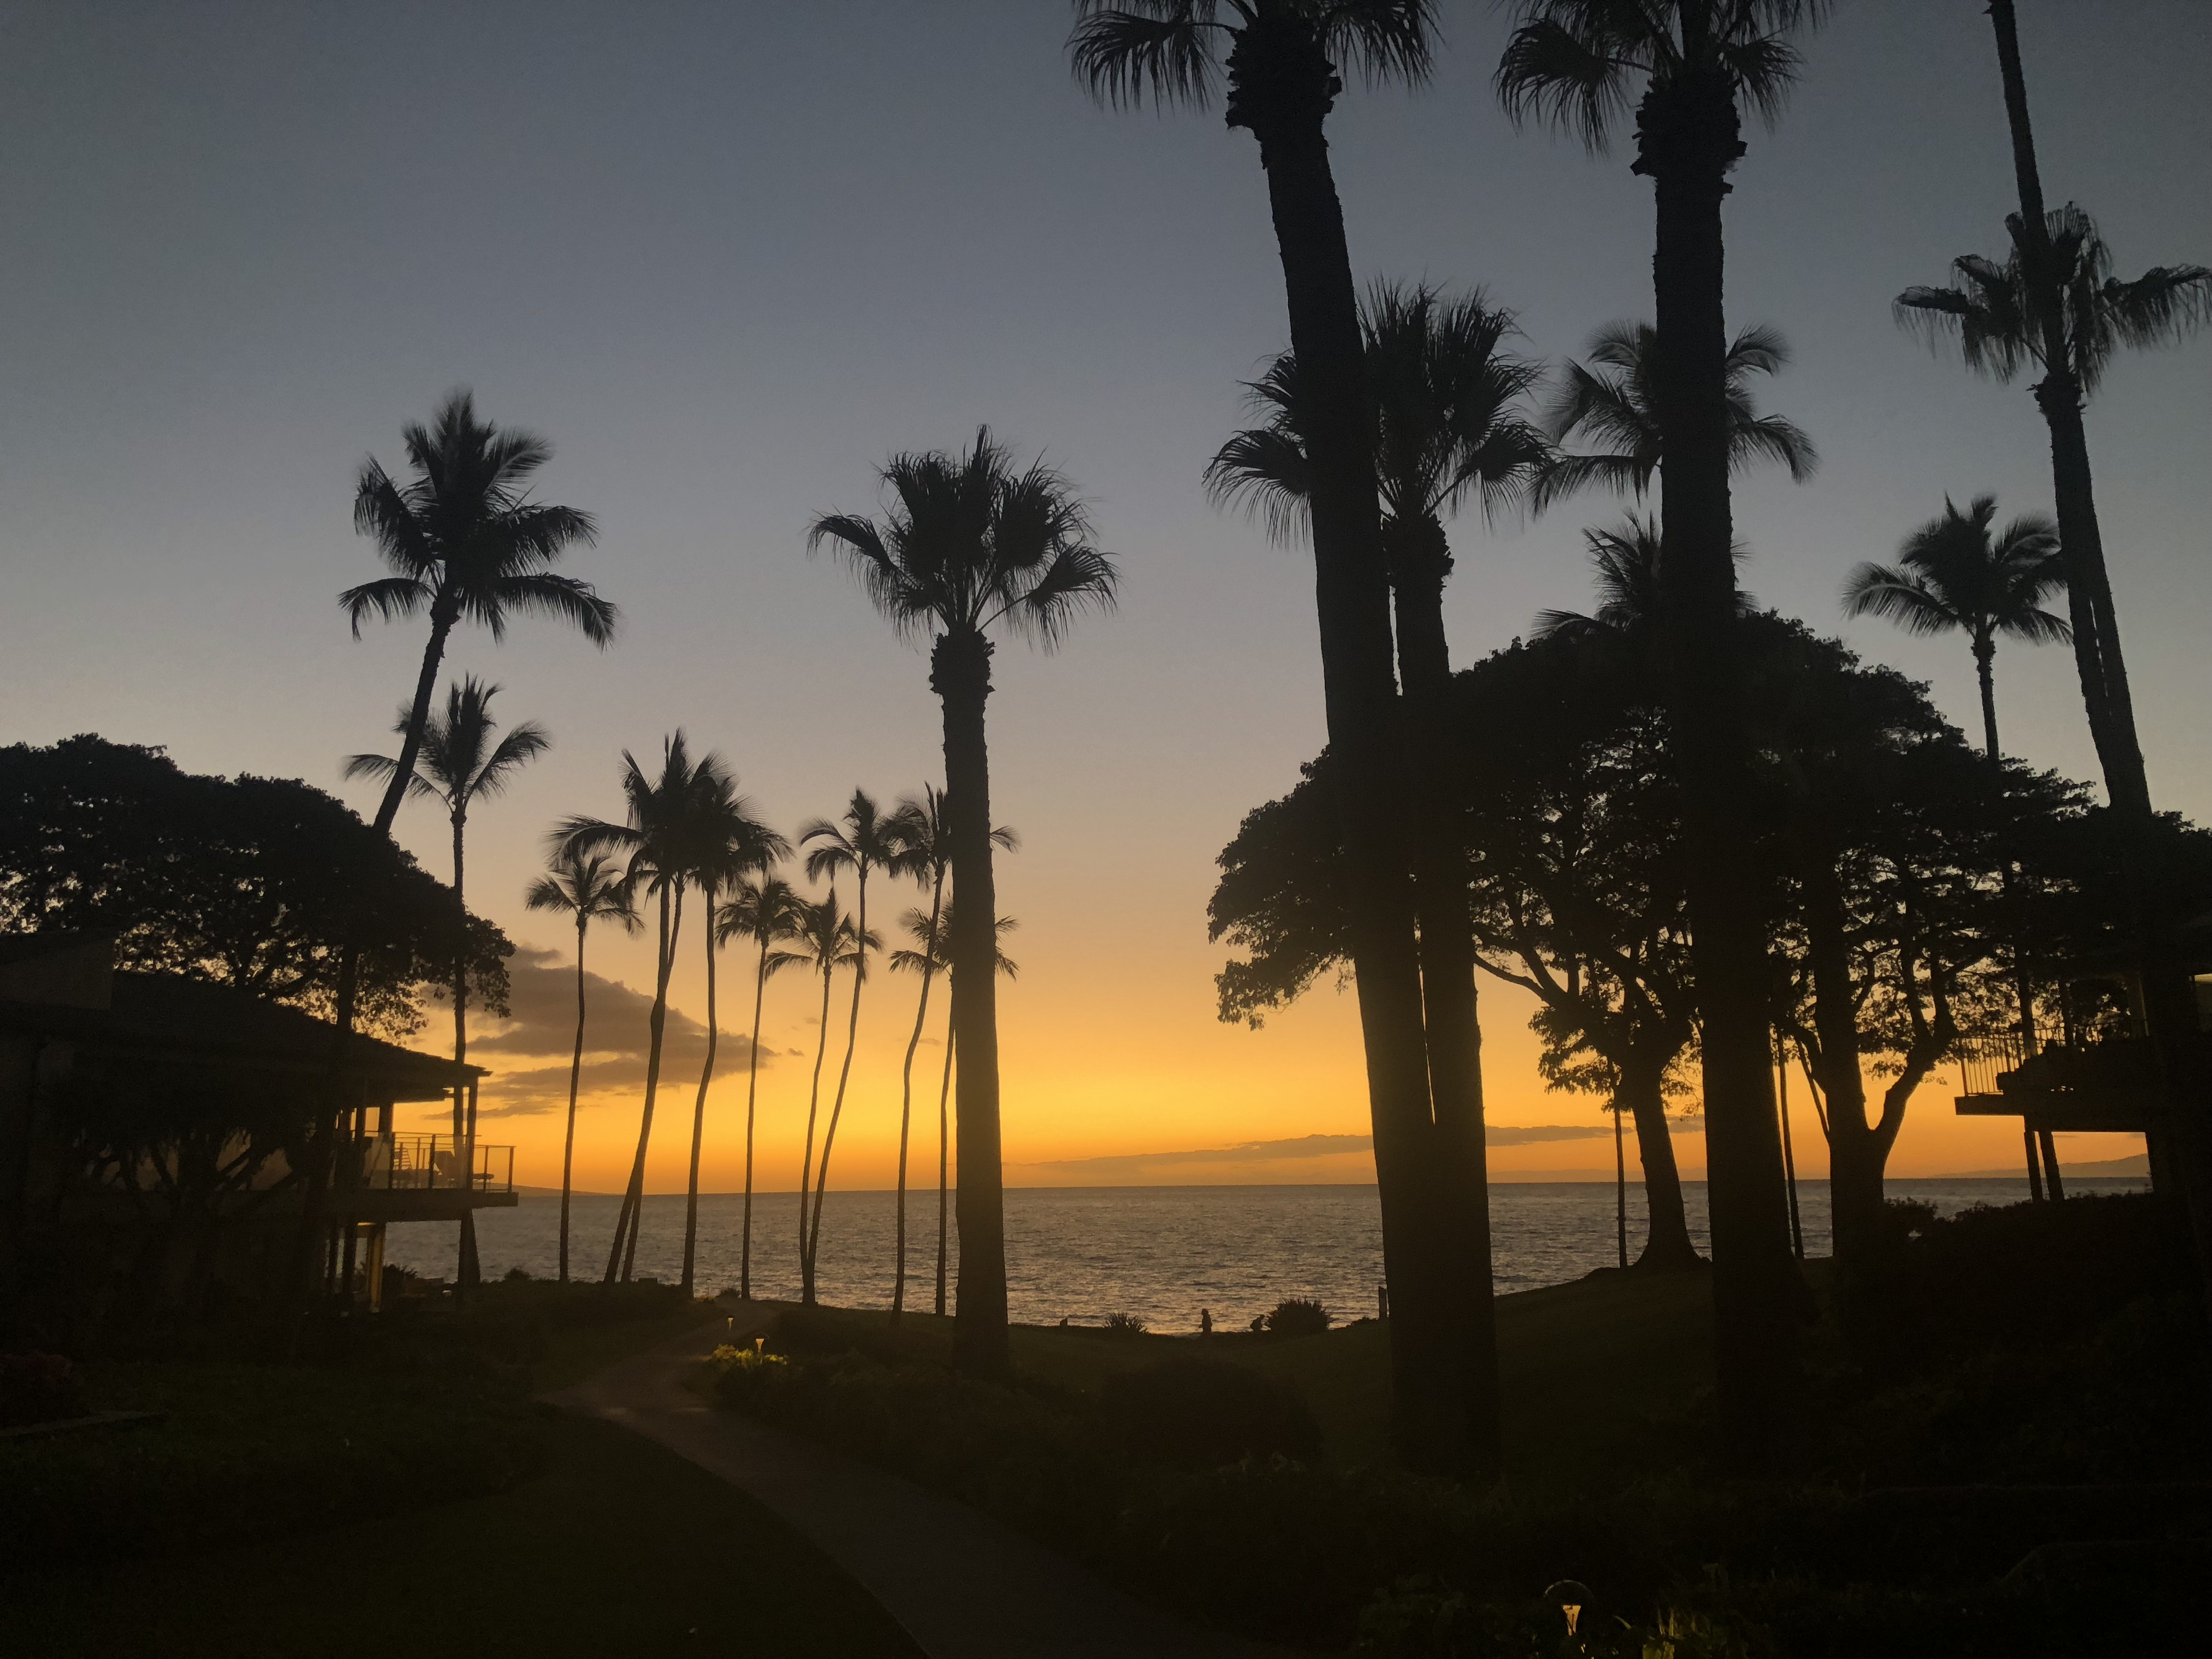 Moment in Maui